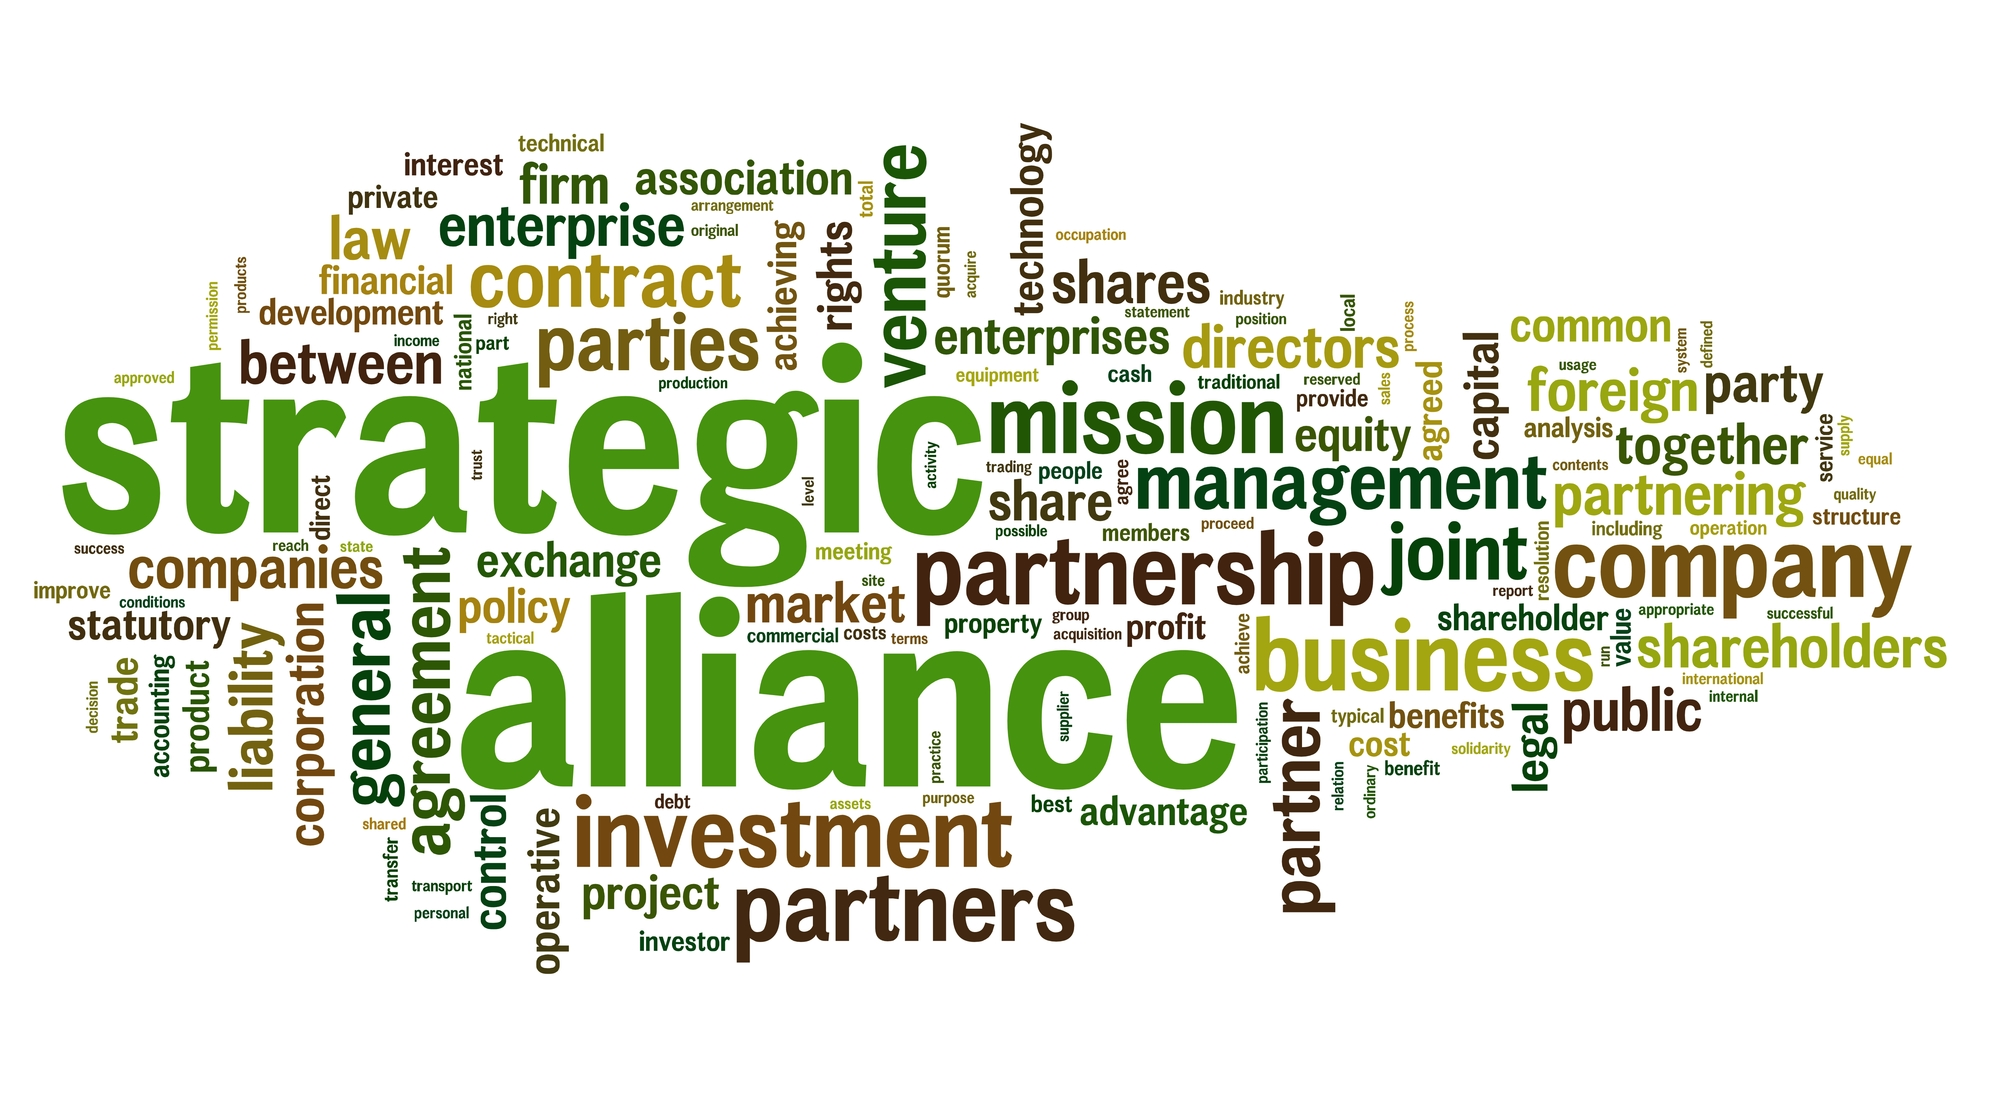 alliance boots future strategic directions organisation business essay Strategic alliances are agreements between two or more independent companies to cooperate in the manufacturing, development, or sale of products and services or other business objectives for example, in a strategic alliance, company a and company b combine their respective resources.